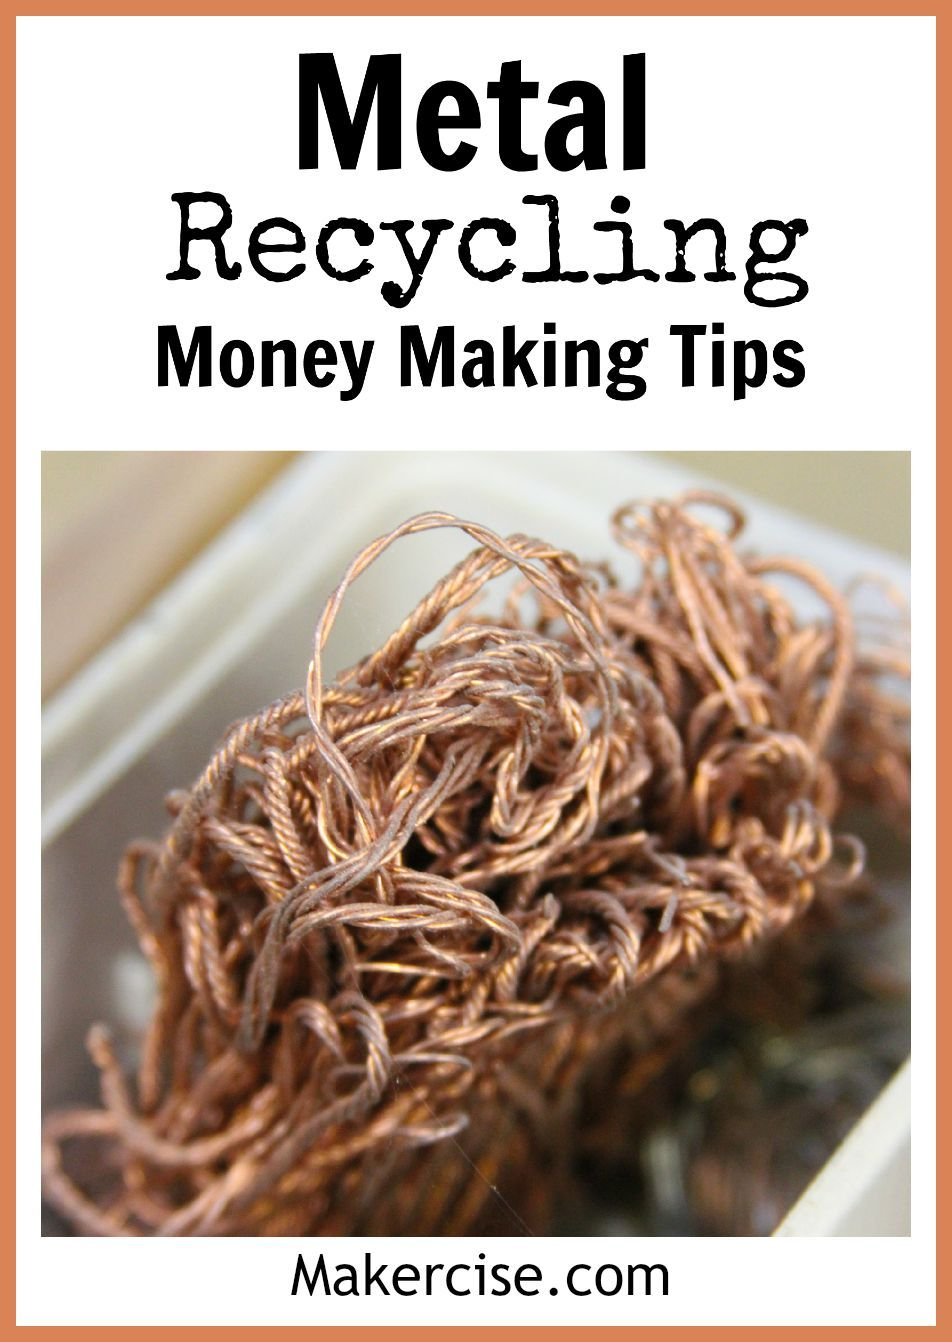 Metal Recycling Money Making Tips Recycling Recycled Metal